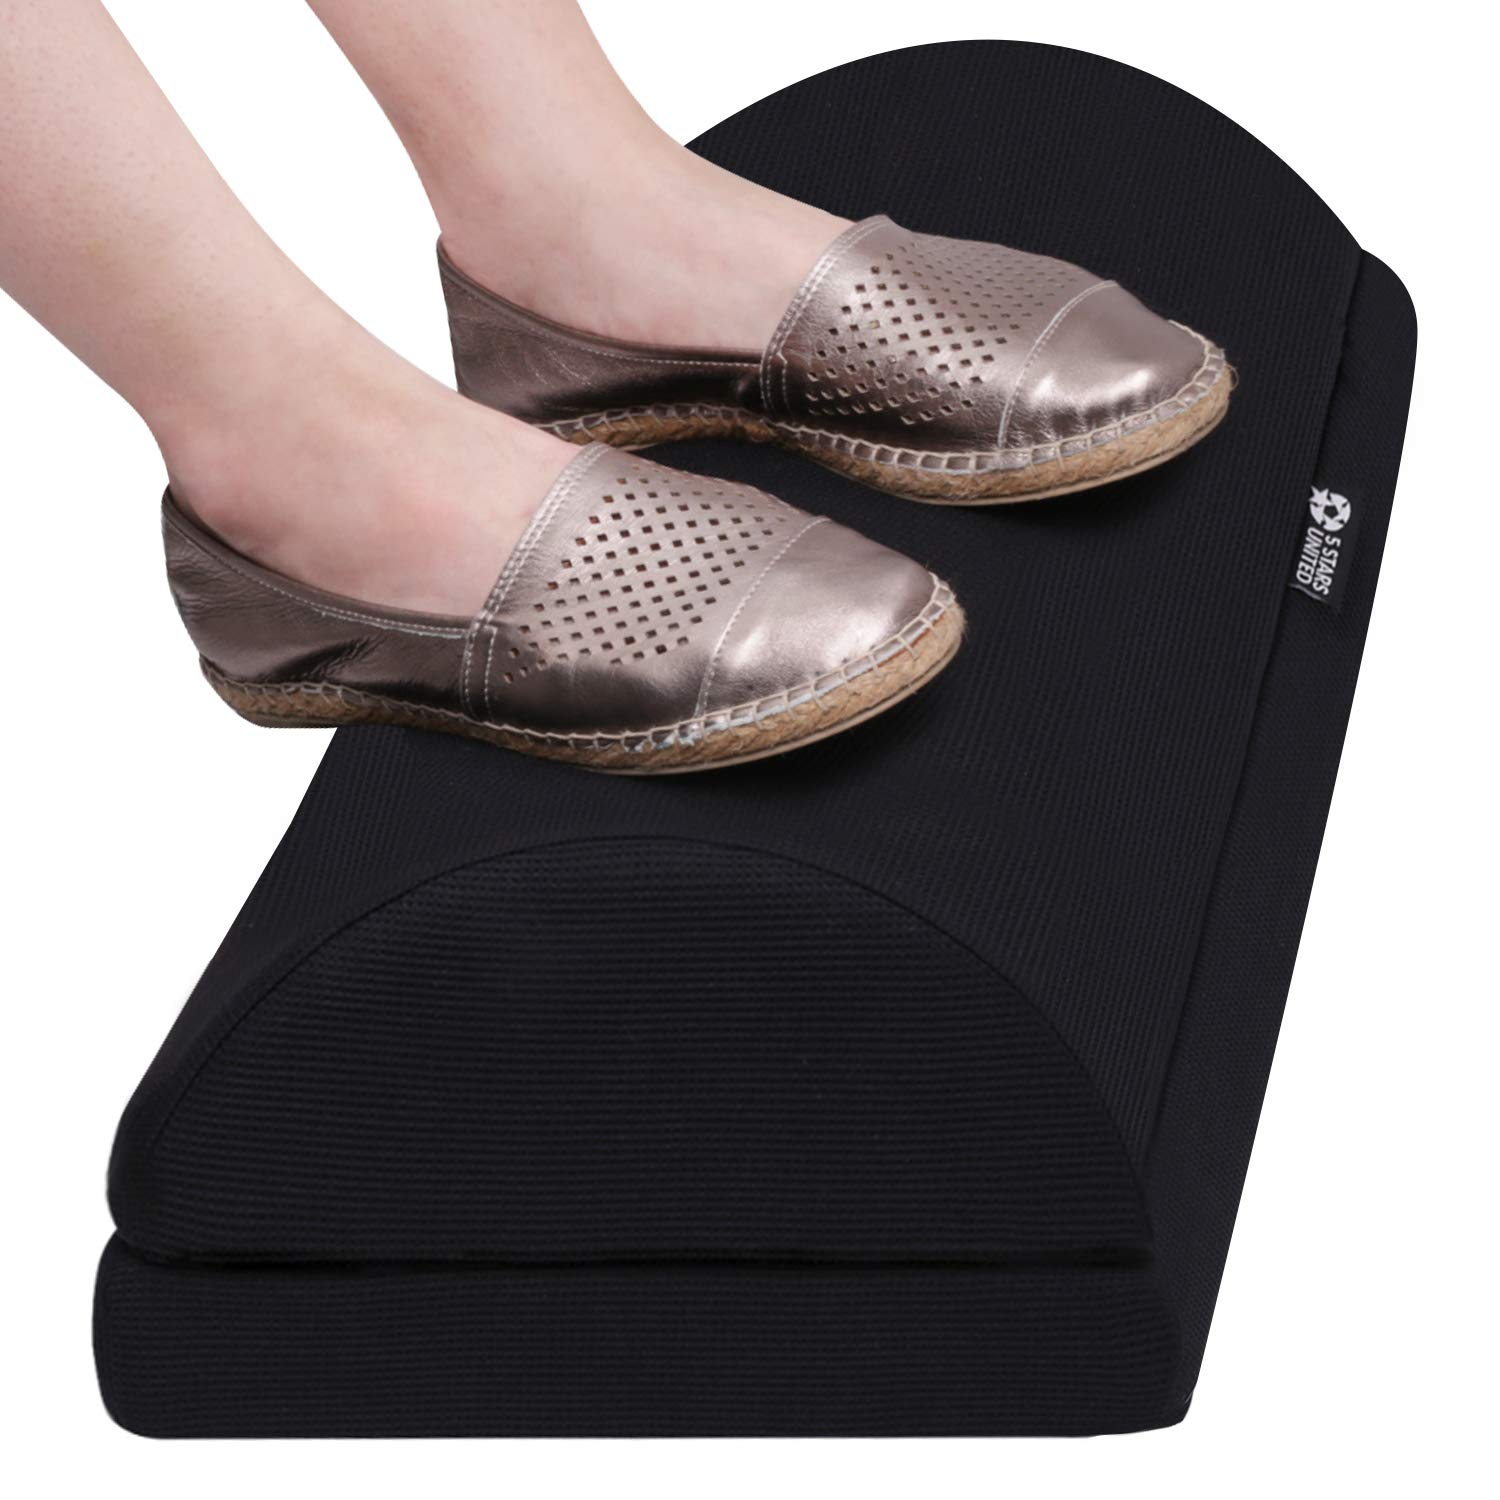 Foot Rest Under Desk Cushion - Foot Stool for Home and Office - 100% Memory Foam - Breathable Mesh Cover - Non-Slip Bottom - Adjustable Height - Ergonomic Half-Cylinder Pad for Extra Leg Support by 5 STARS UNITED